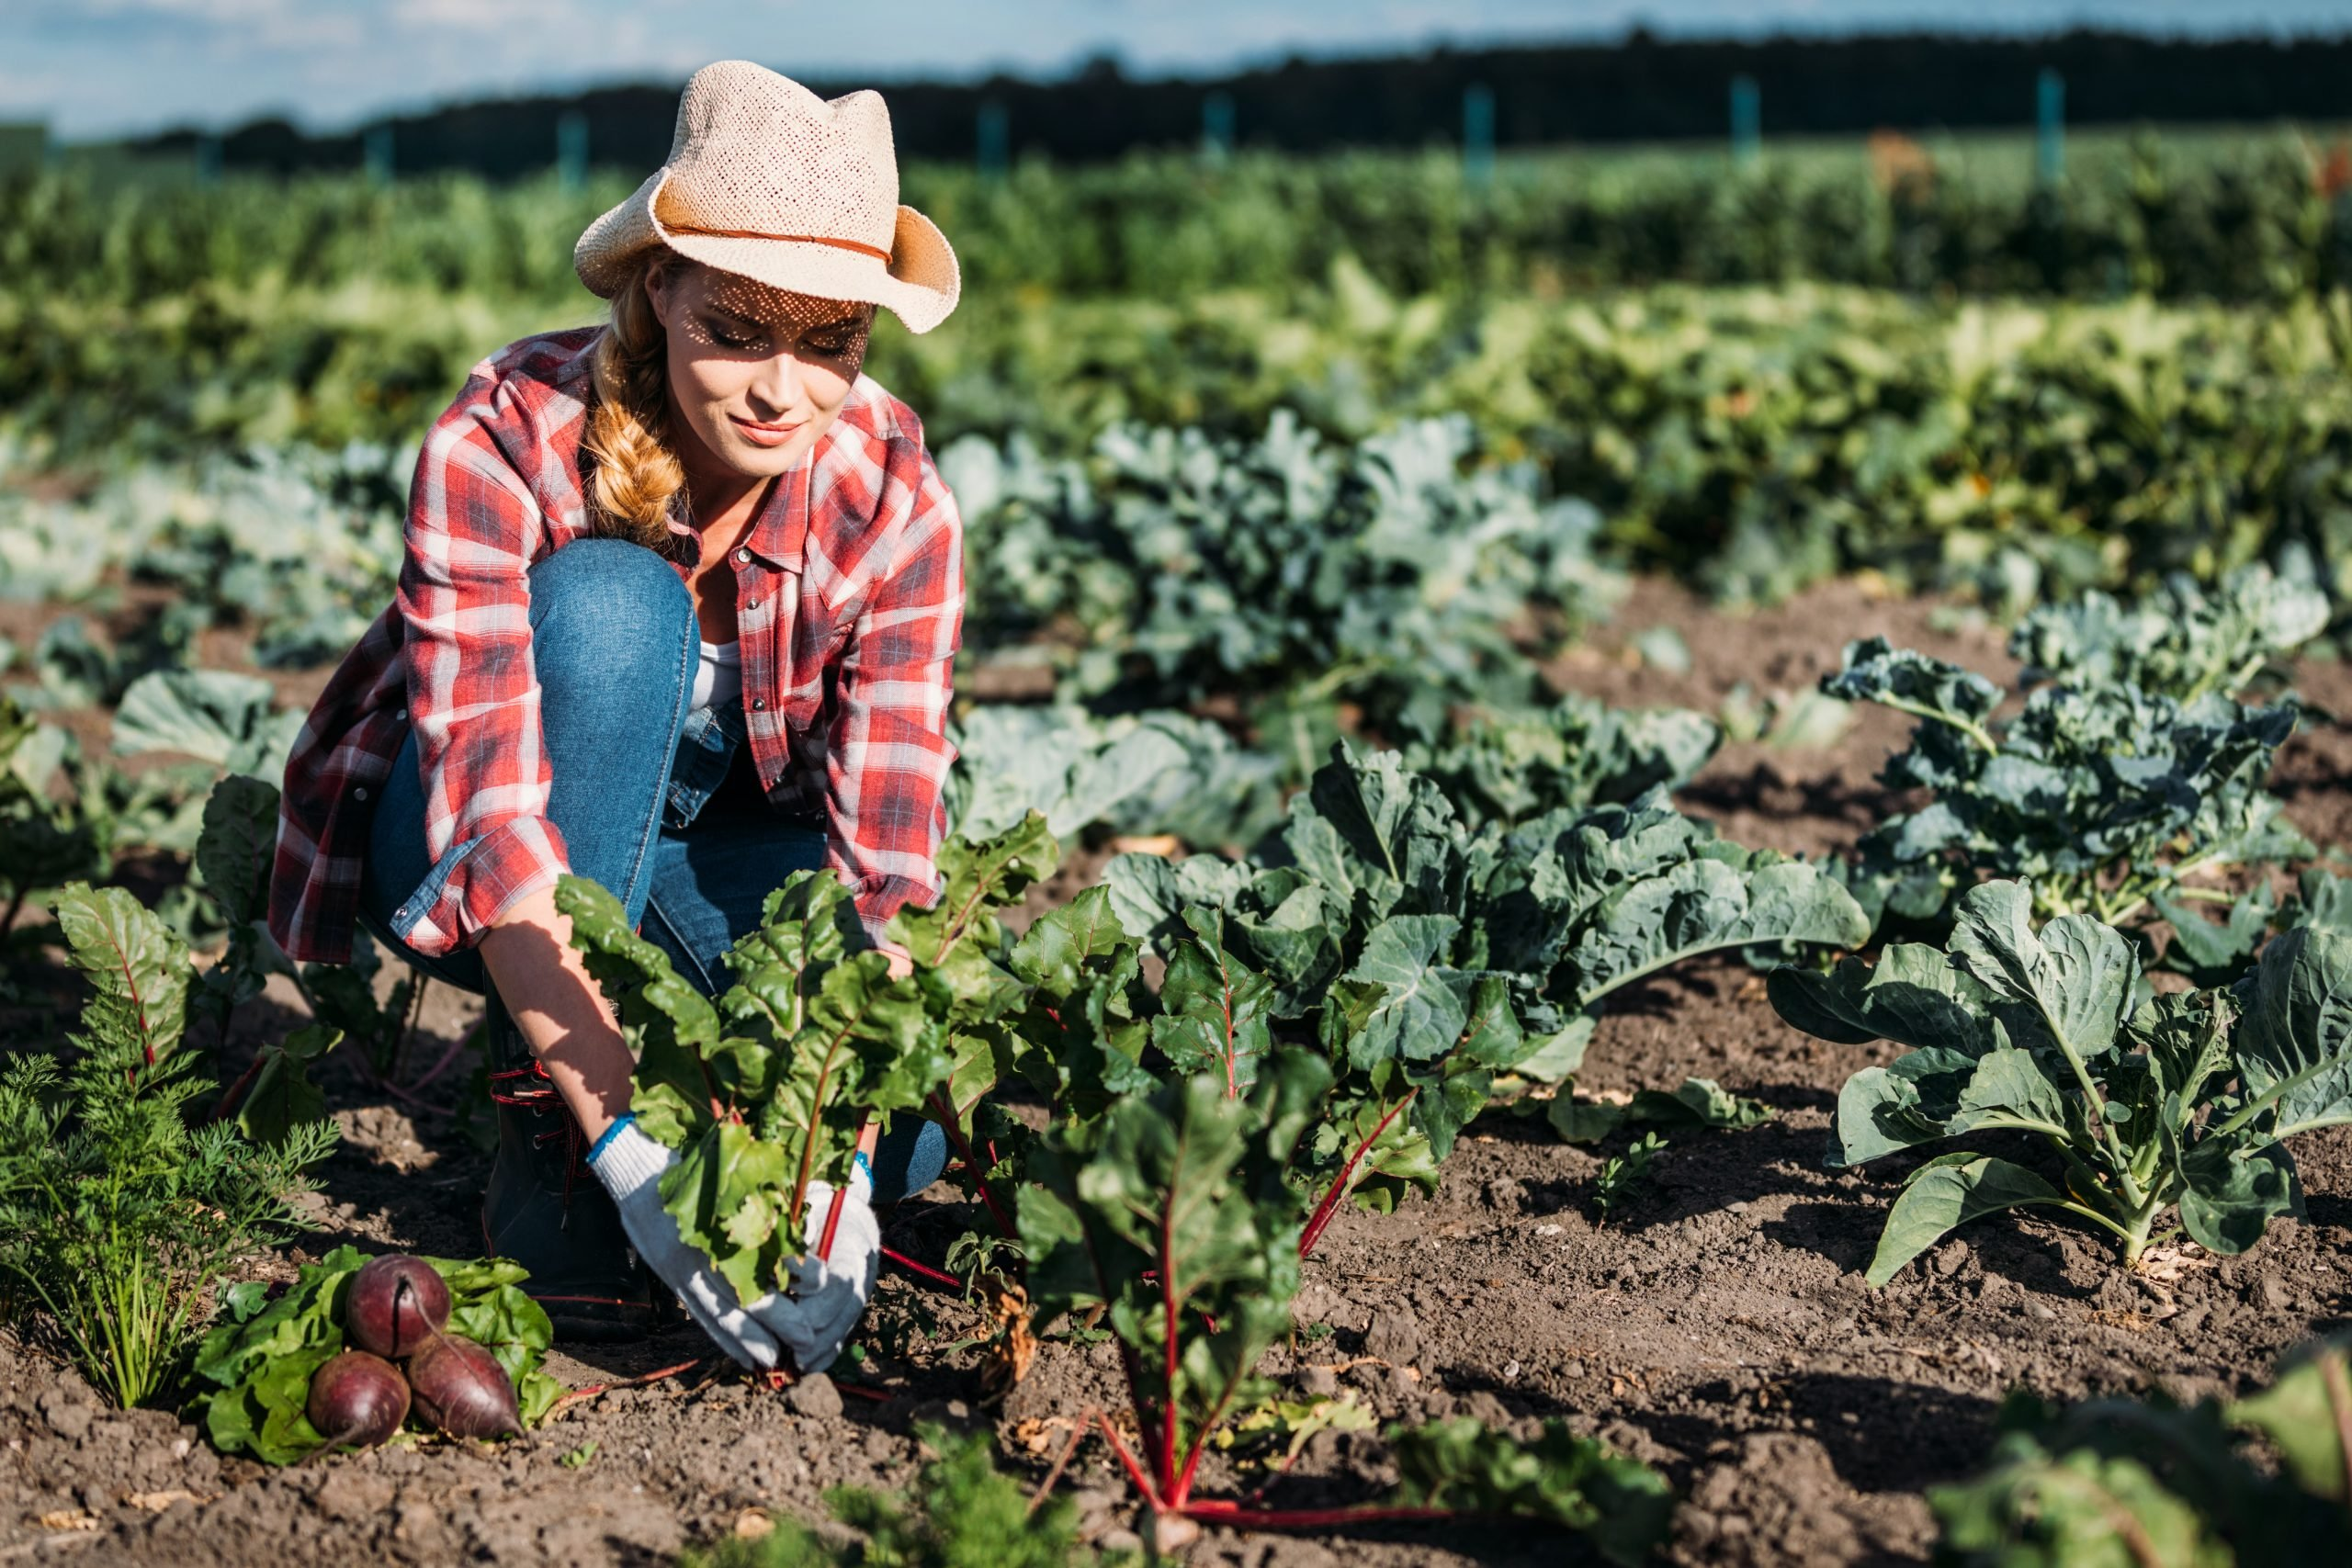 Female Farmer Tending to Specialty Crops